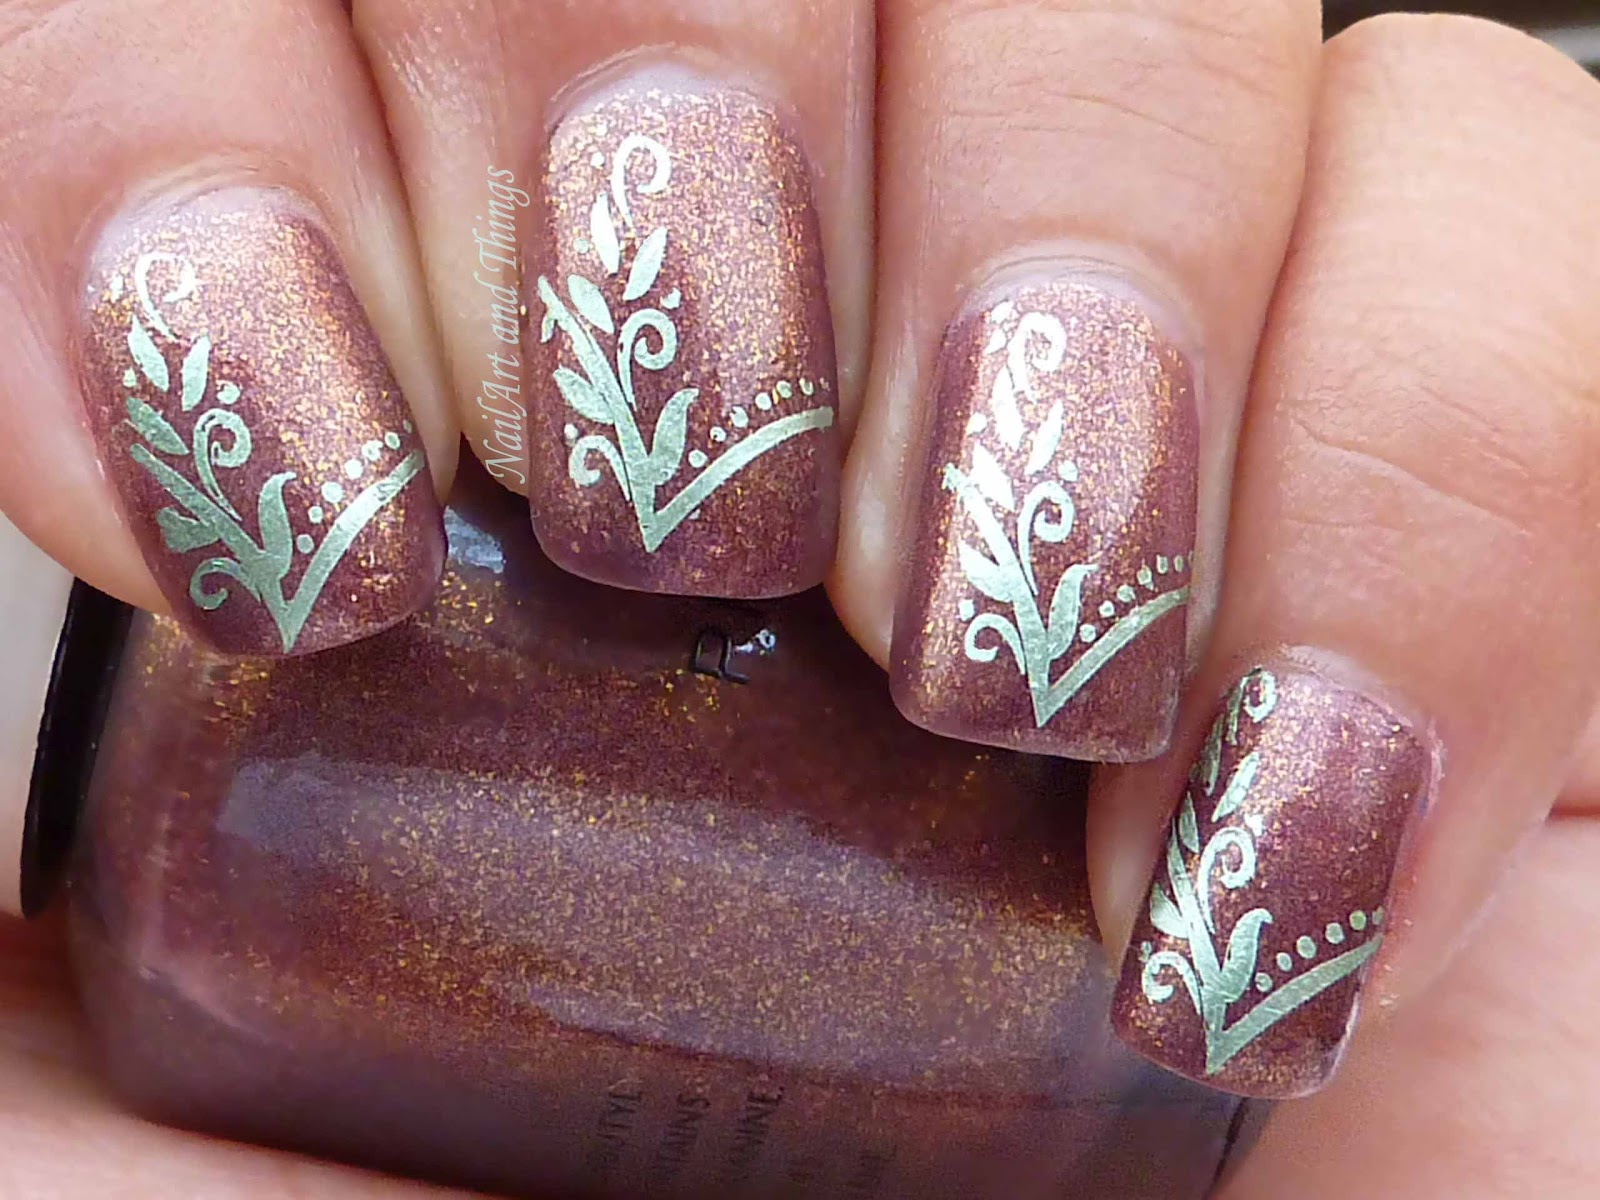 NailArt and Things: OPI warm and fuzzy + Indian wedding ...